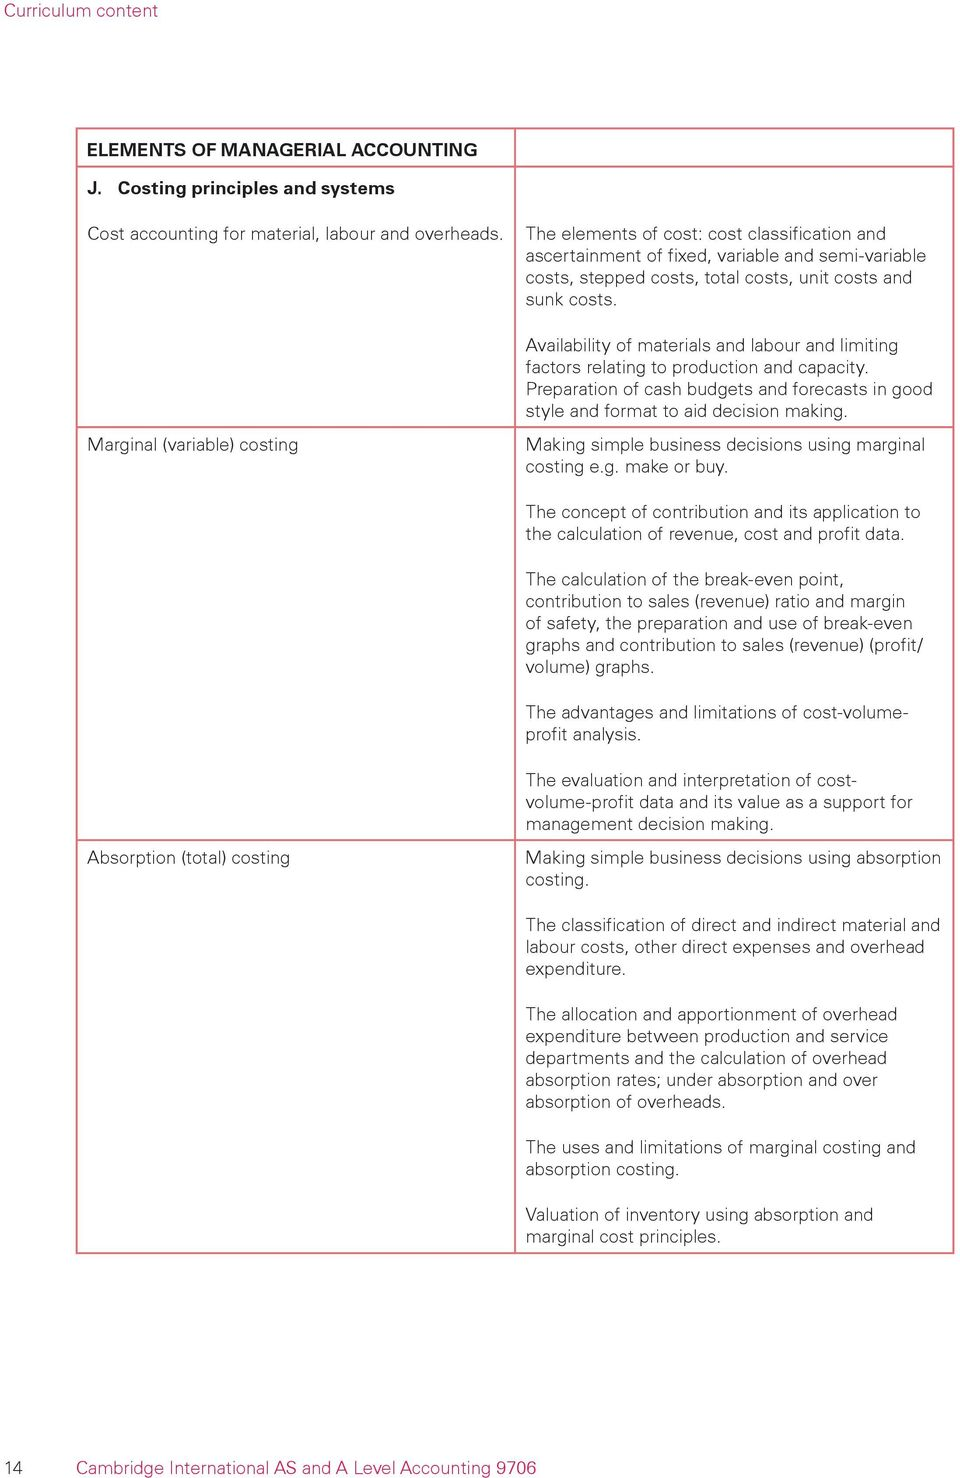 Syllabus cambridge international as and a level accounting for availability of materials and labour and limiting factors relating to production and capacity preparation of urtaz Image collections